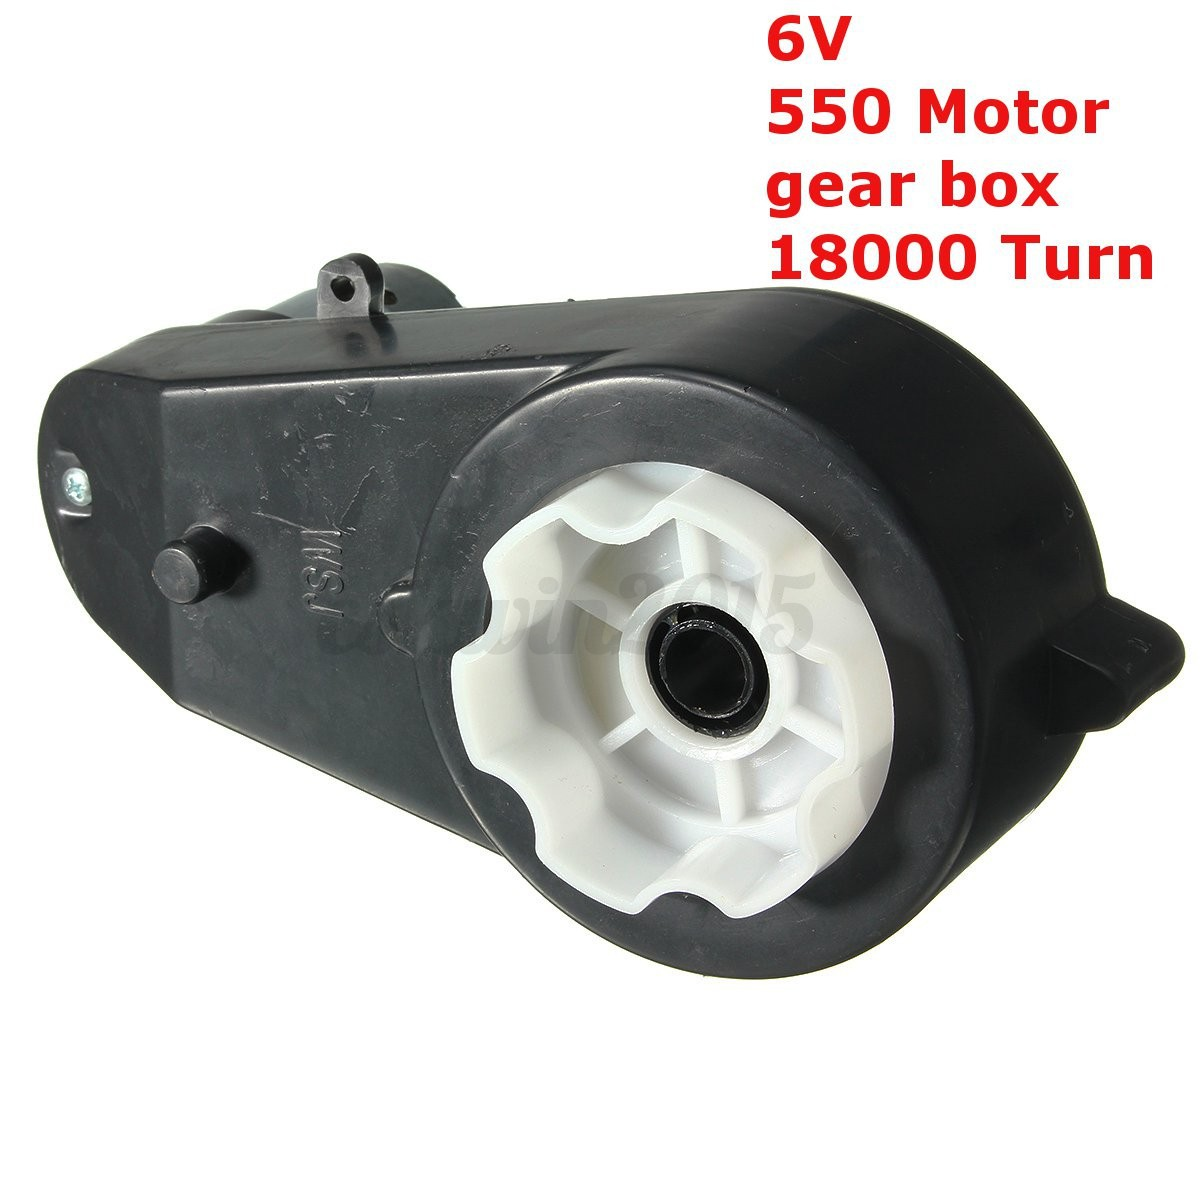 6v 18000 rpm electric motor gear box for kids ride on car bike toy spare parts ebay. Black Bedroom Furniture Sets. Home Design Ideas